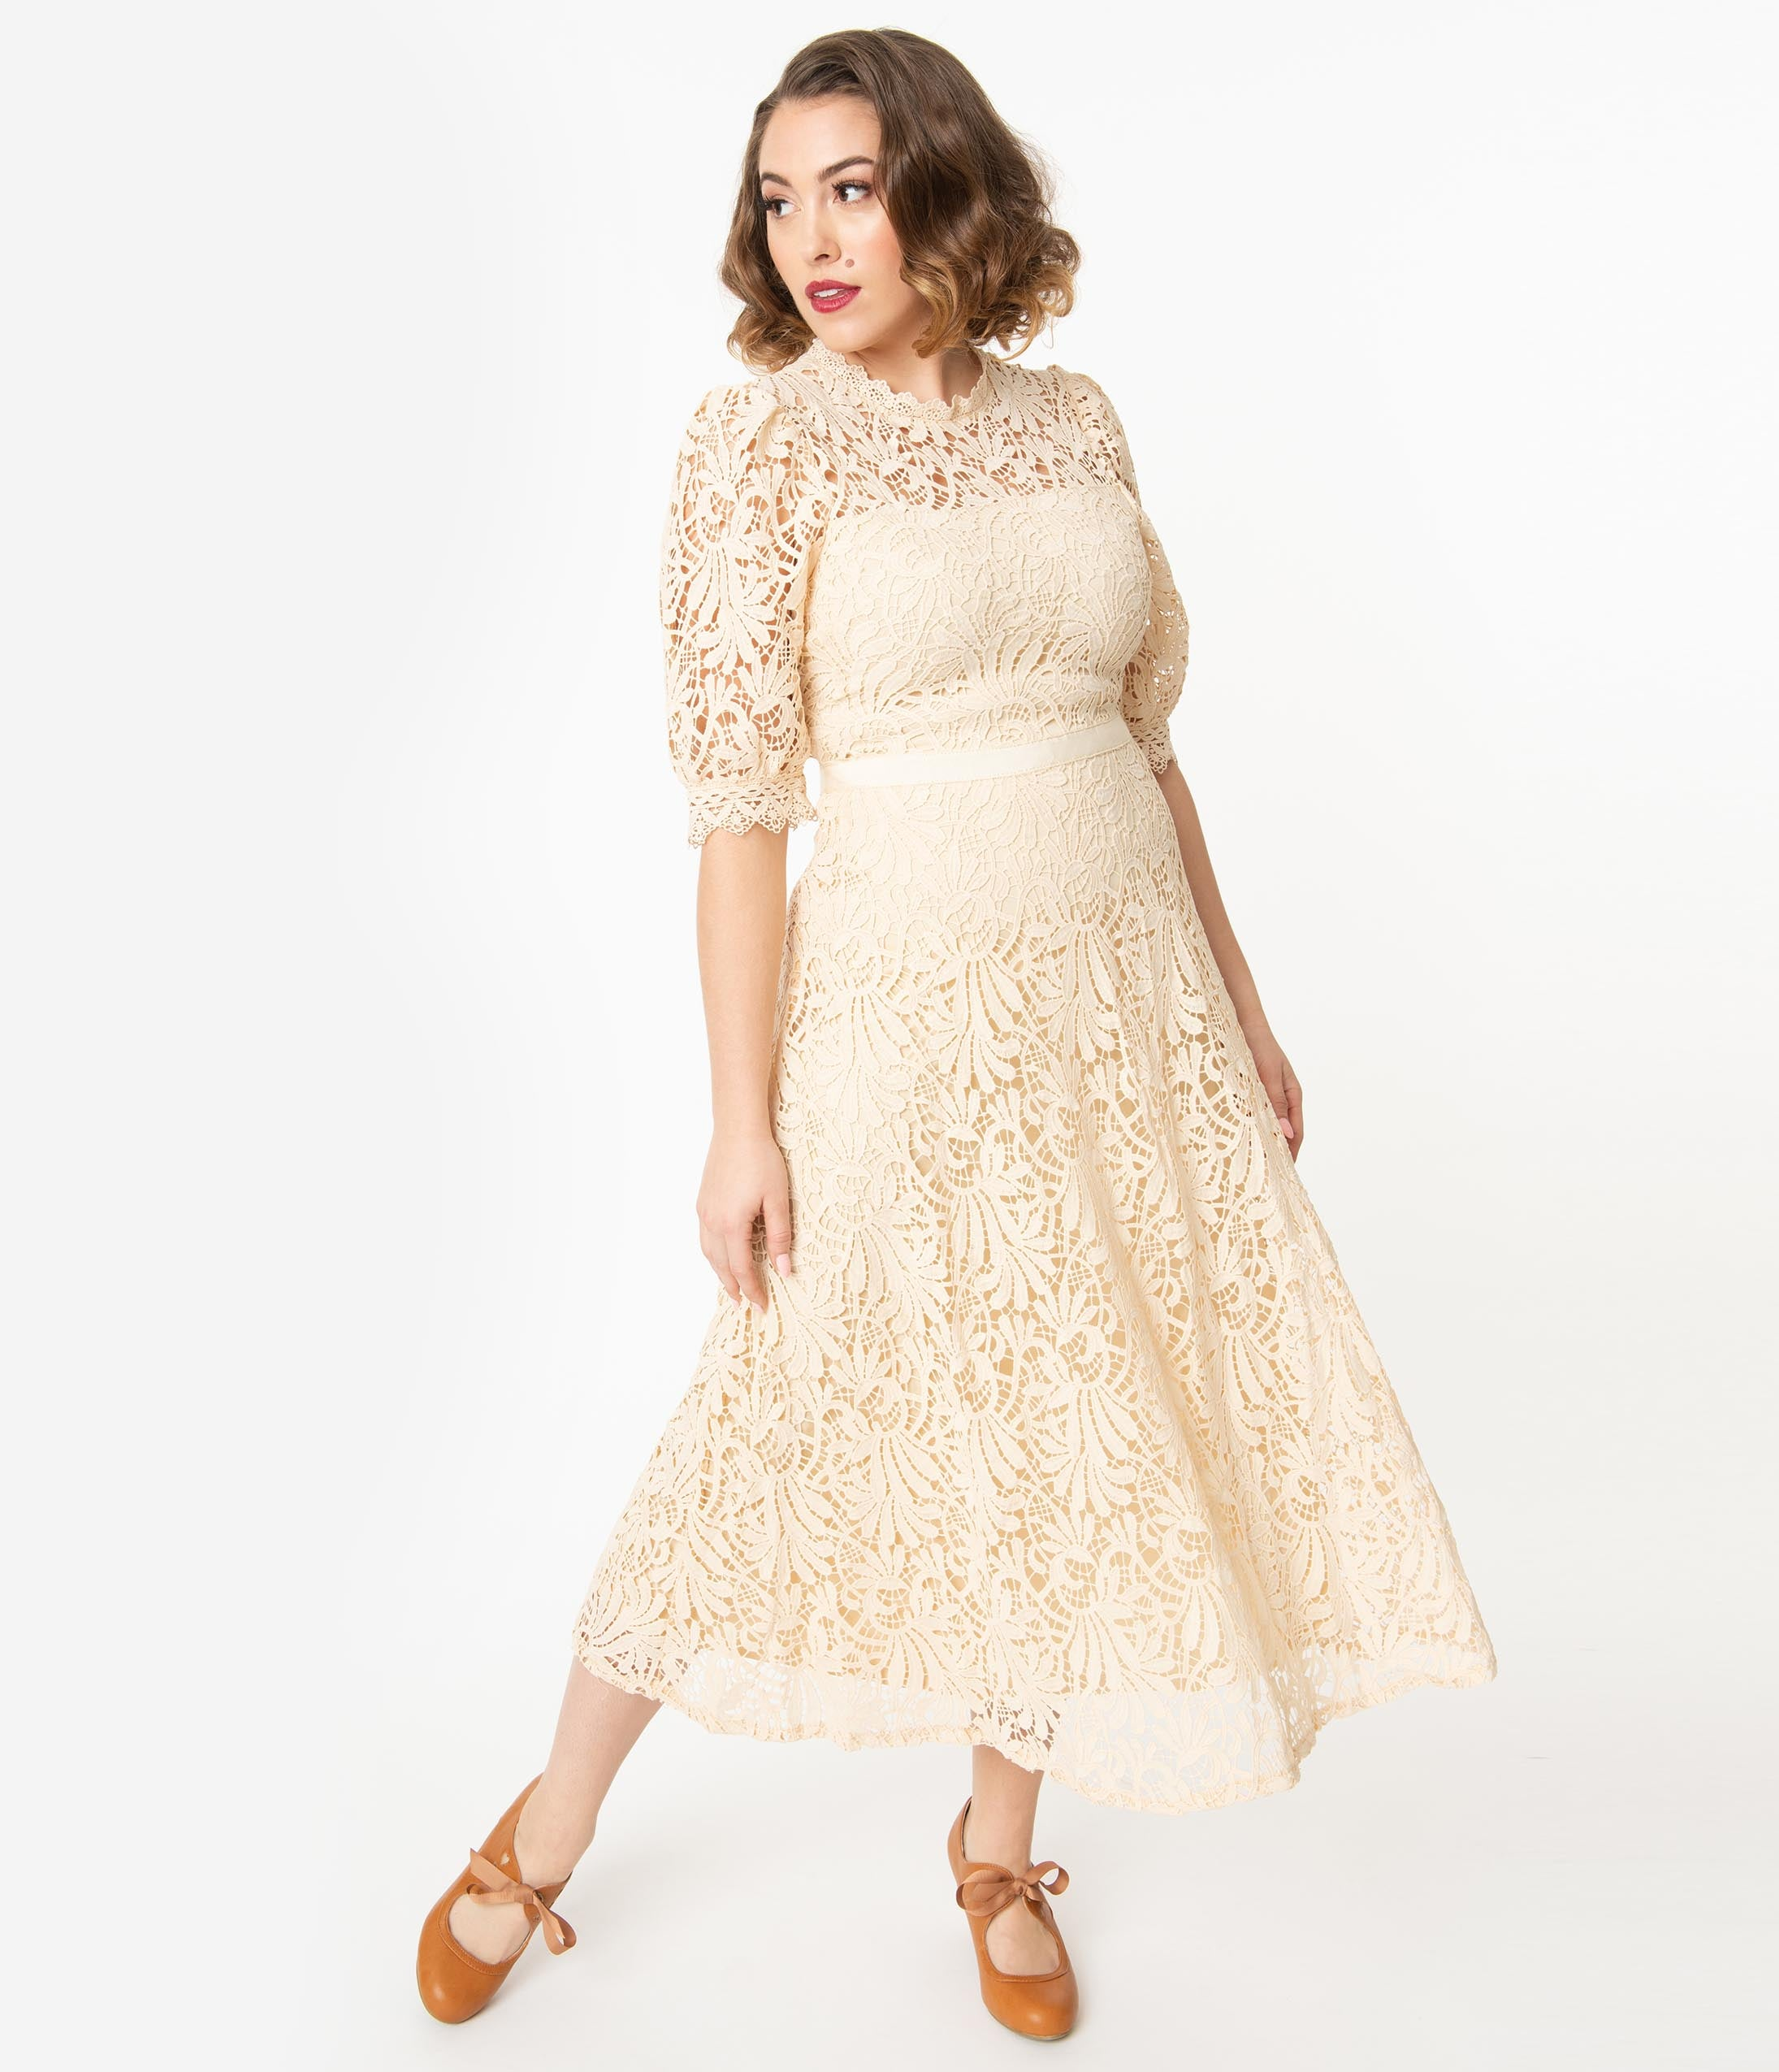 1940s Dresses | 40s Dress, Swing Dress 1940S Style Cream Lace Midi Dress $98.00 AT vintagedancer.com